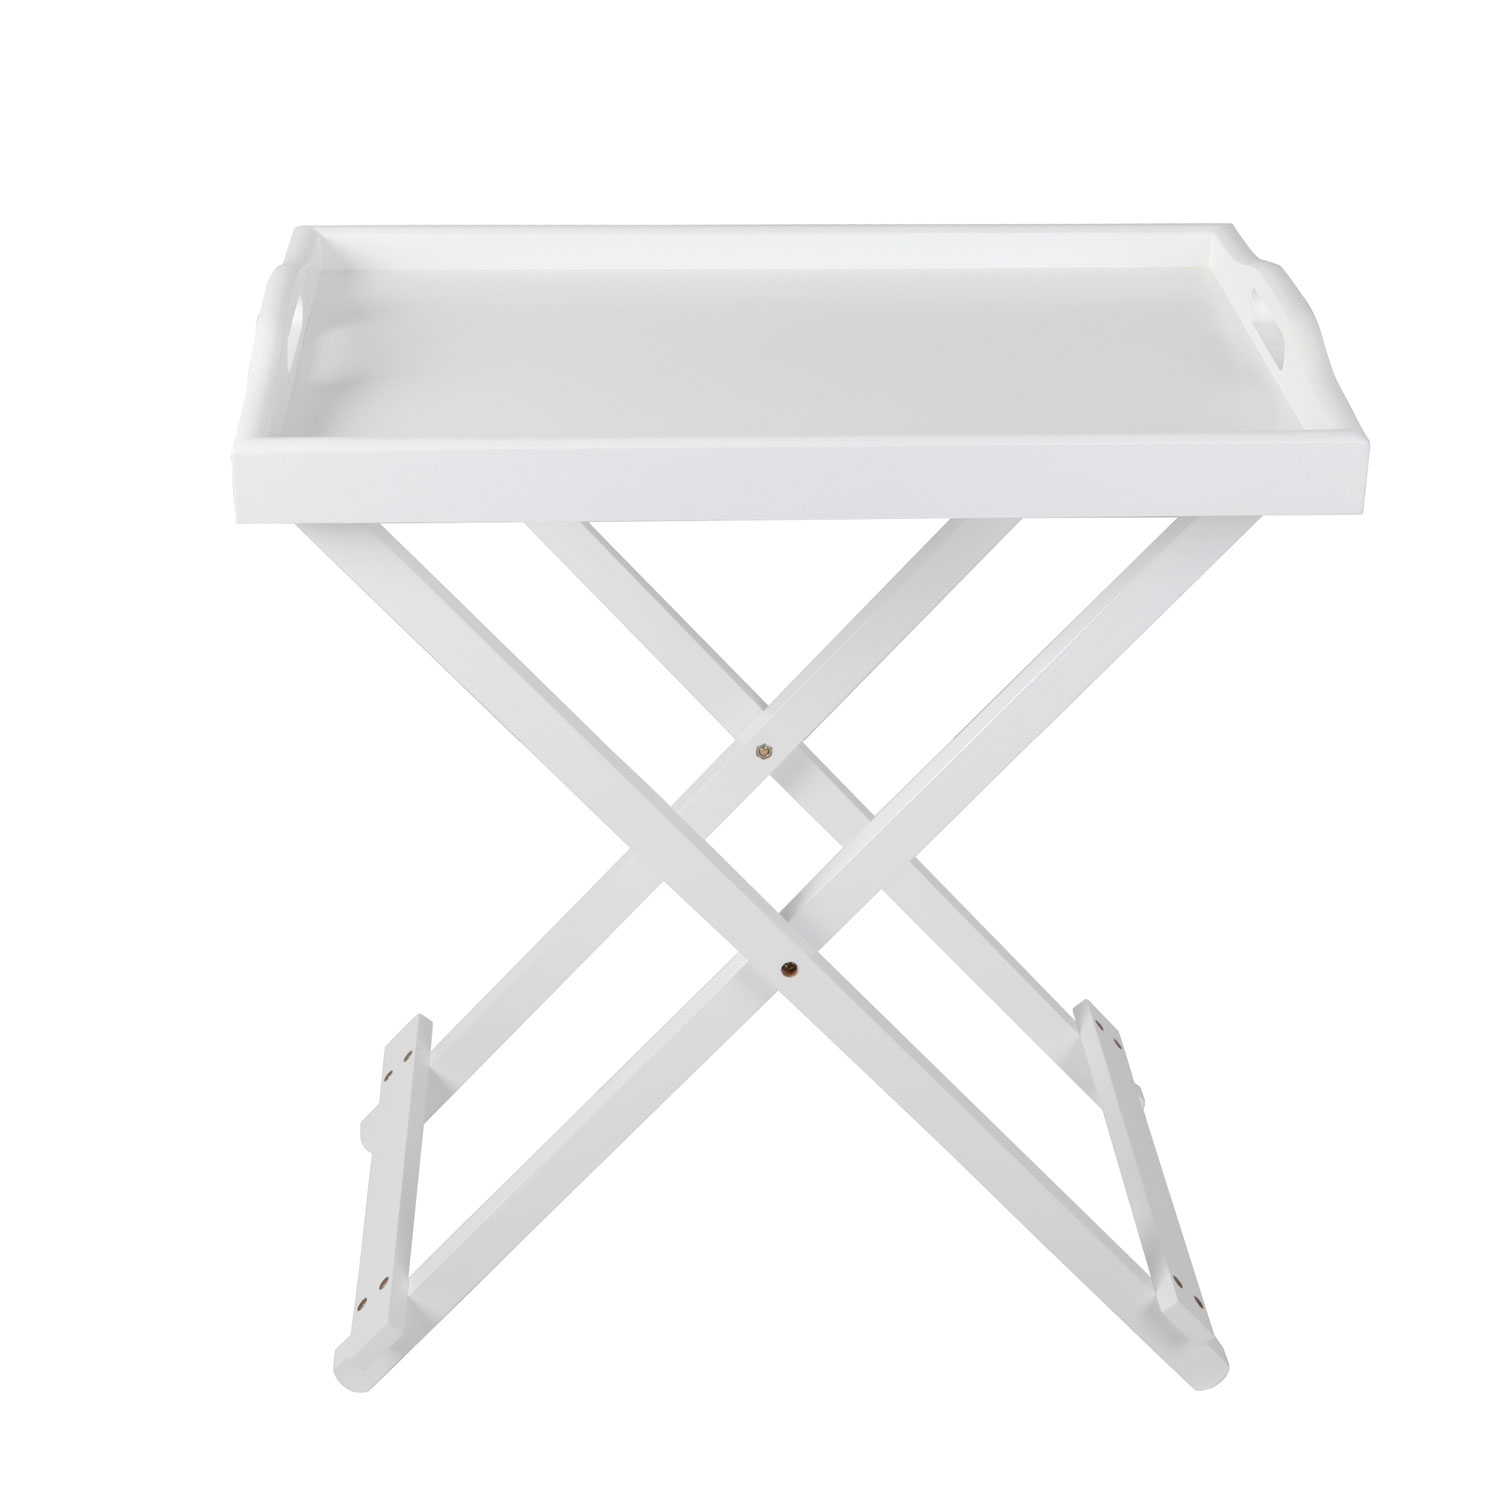 Serving Tray Side Table With Handle In White